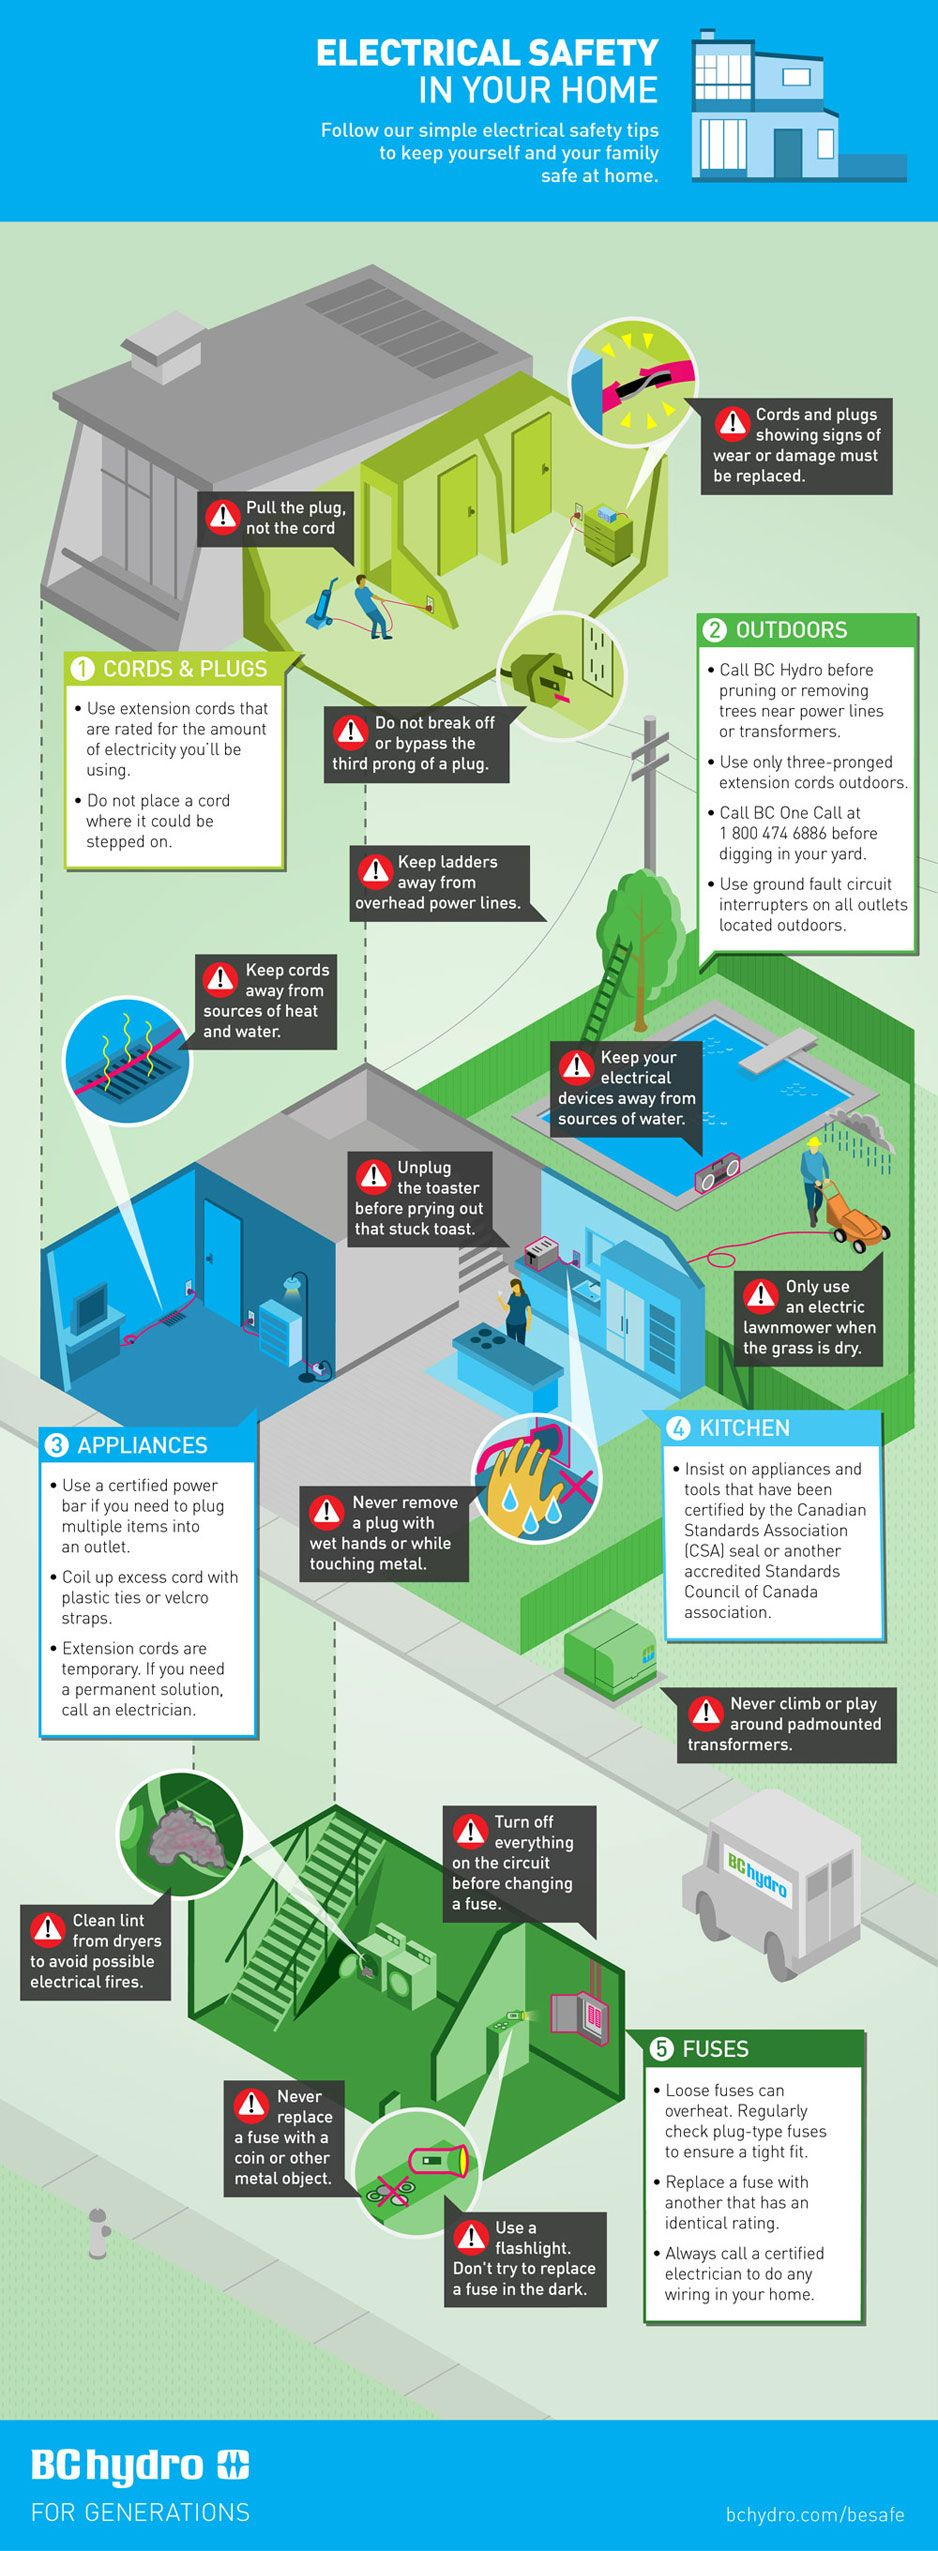 Safety at home infographic Electrical Services Home